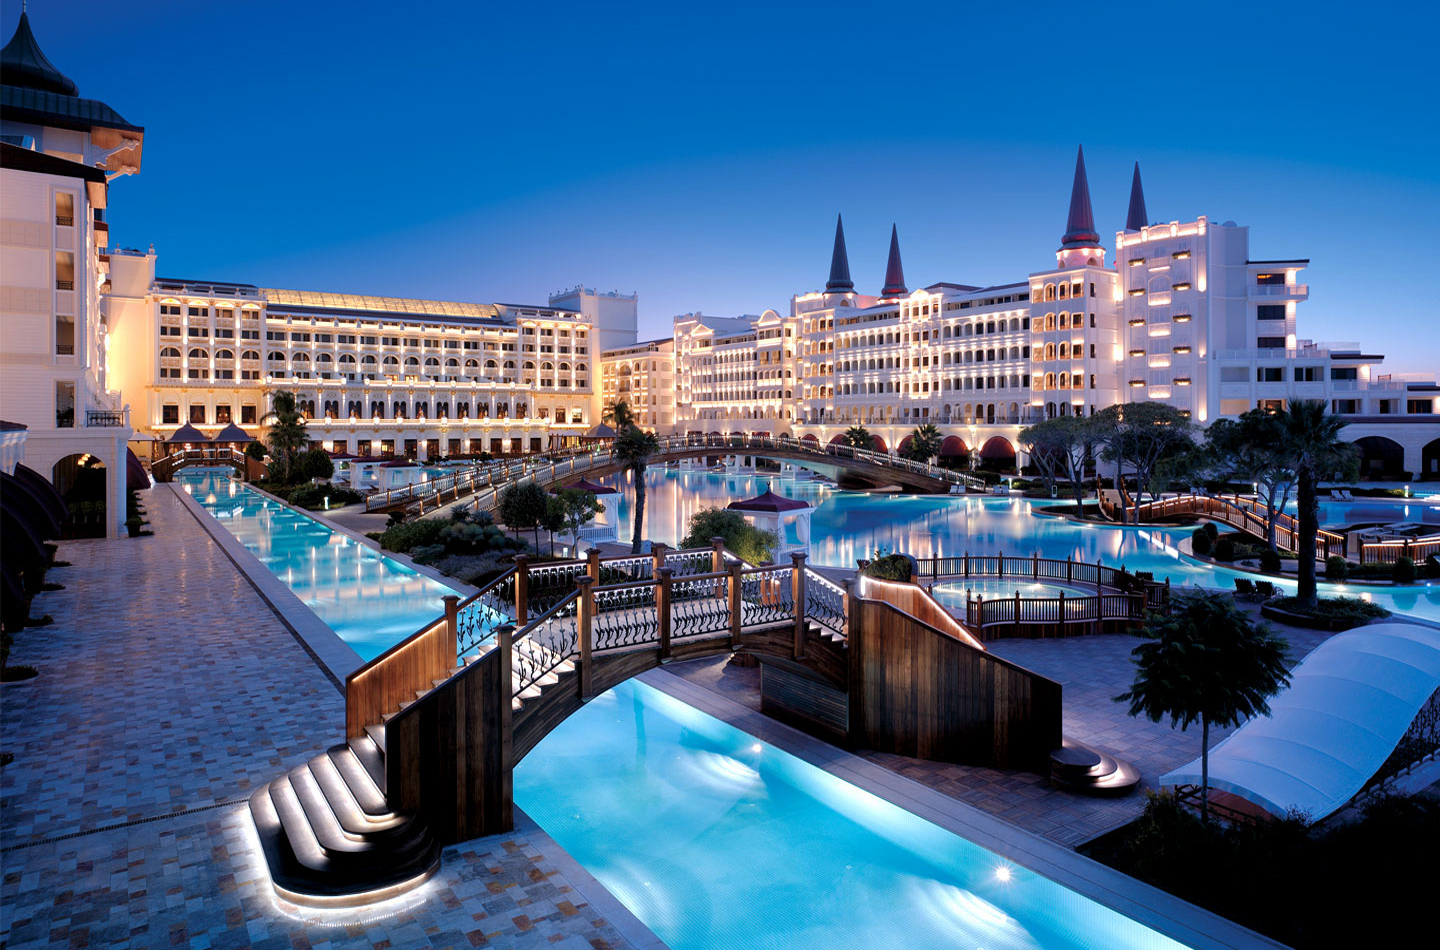 image-of-hotel-antalya-turkey